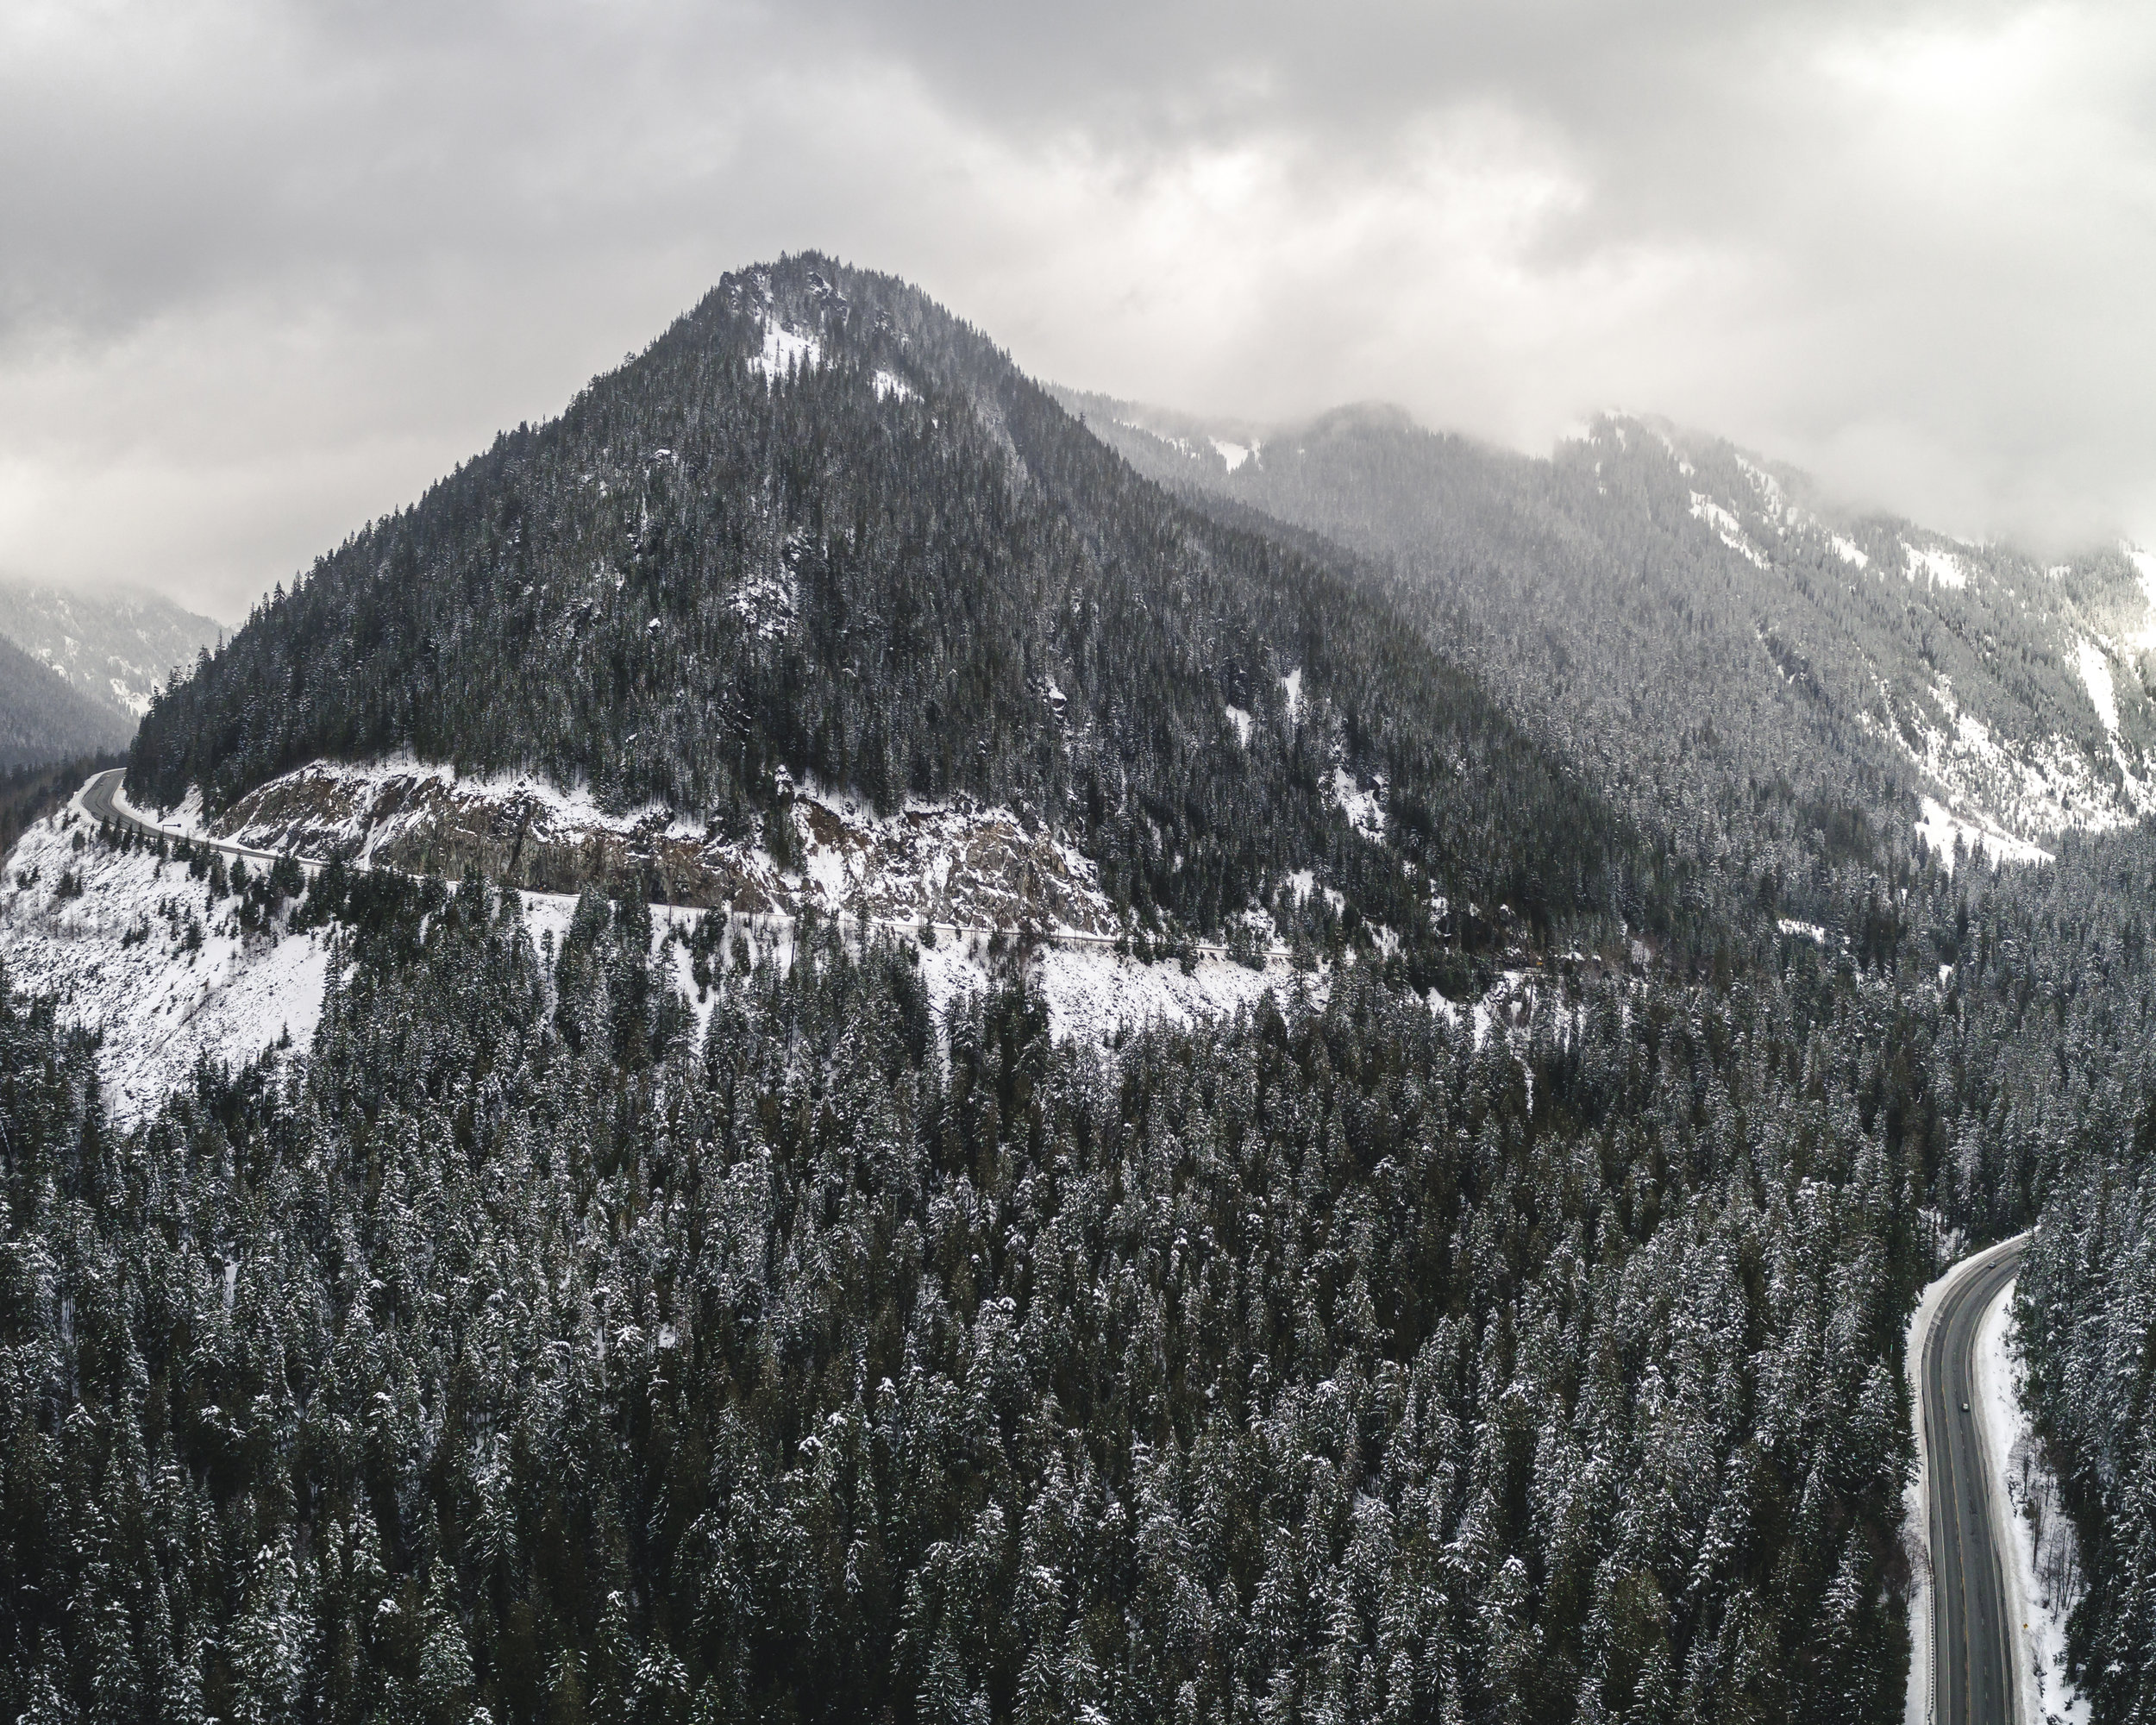 Dramatic_Snowy_Weather_Mountain_Highway_Aerial.jpg